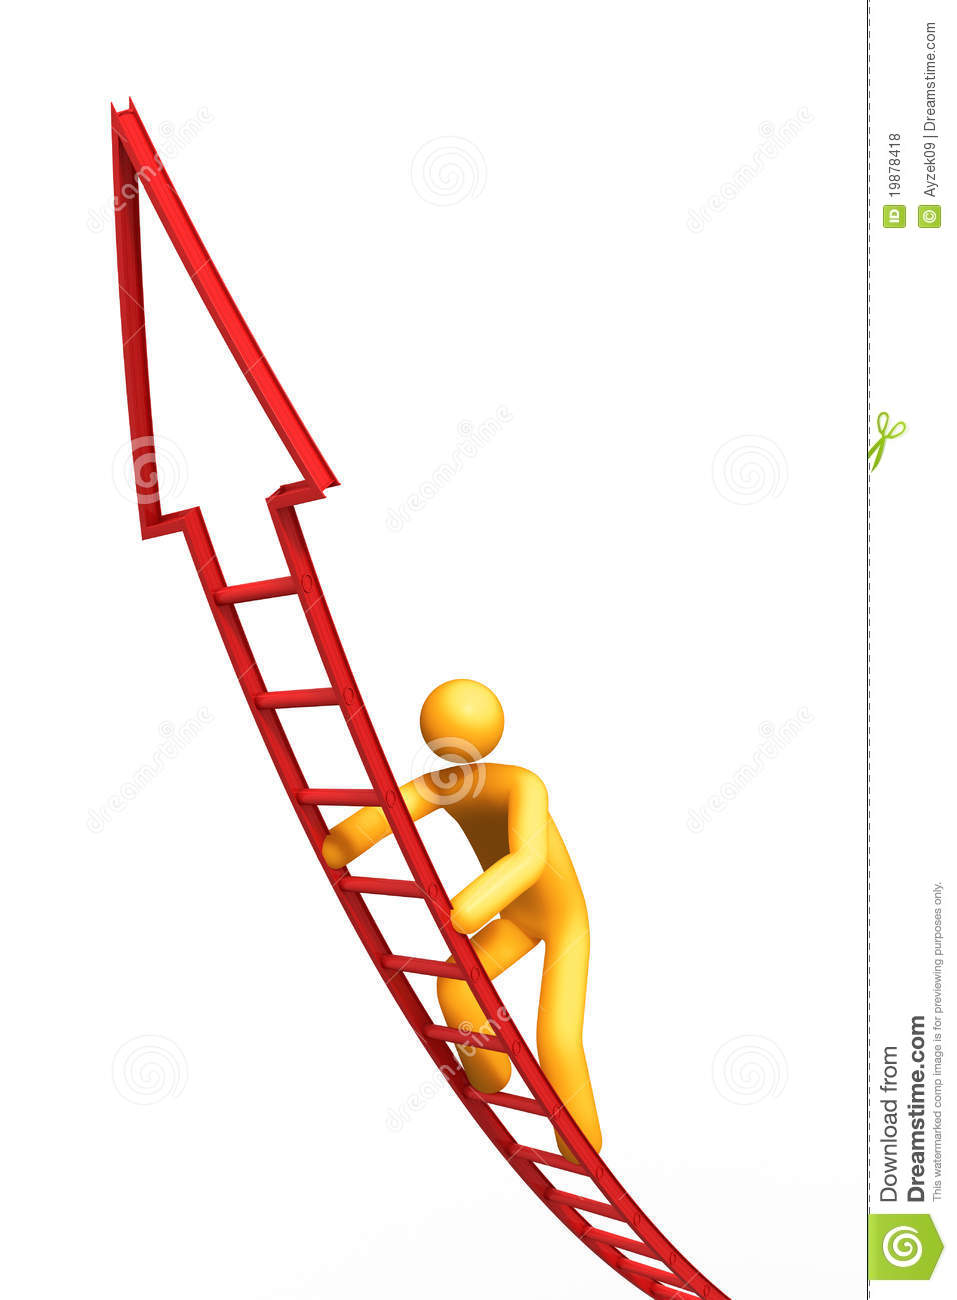 Ladder Of Success Royalty Free Stock Photos - Image: 19878418